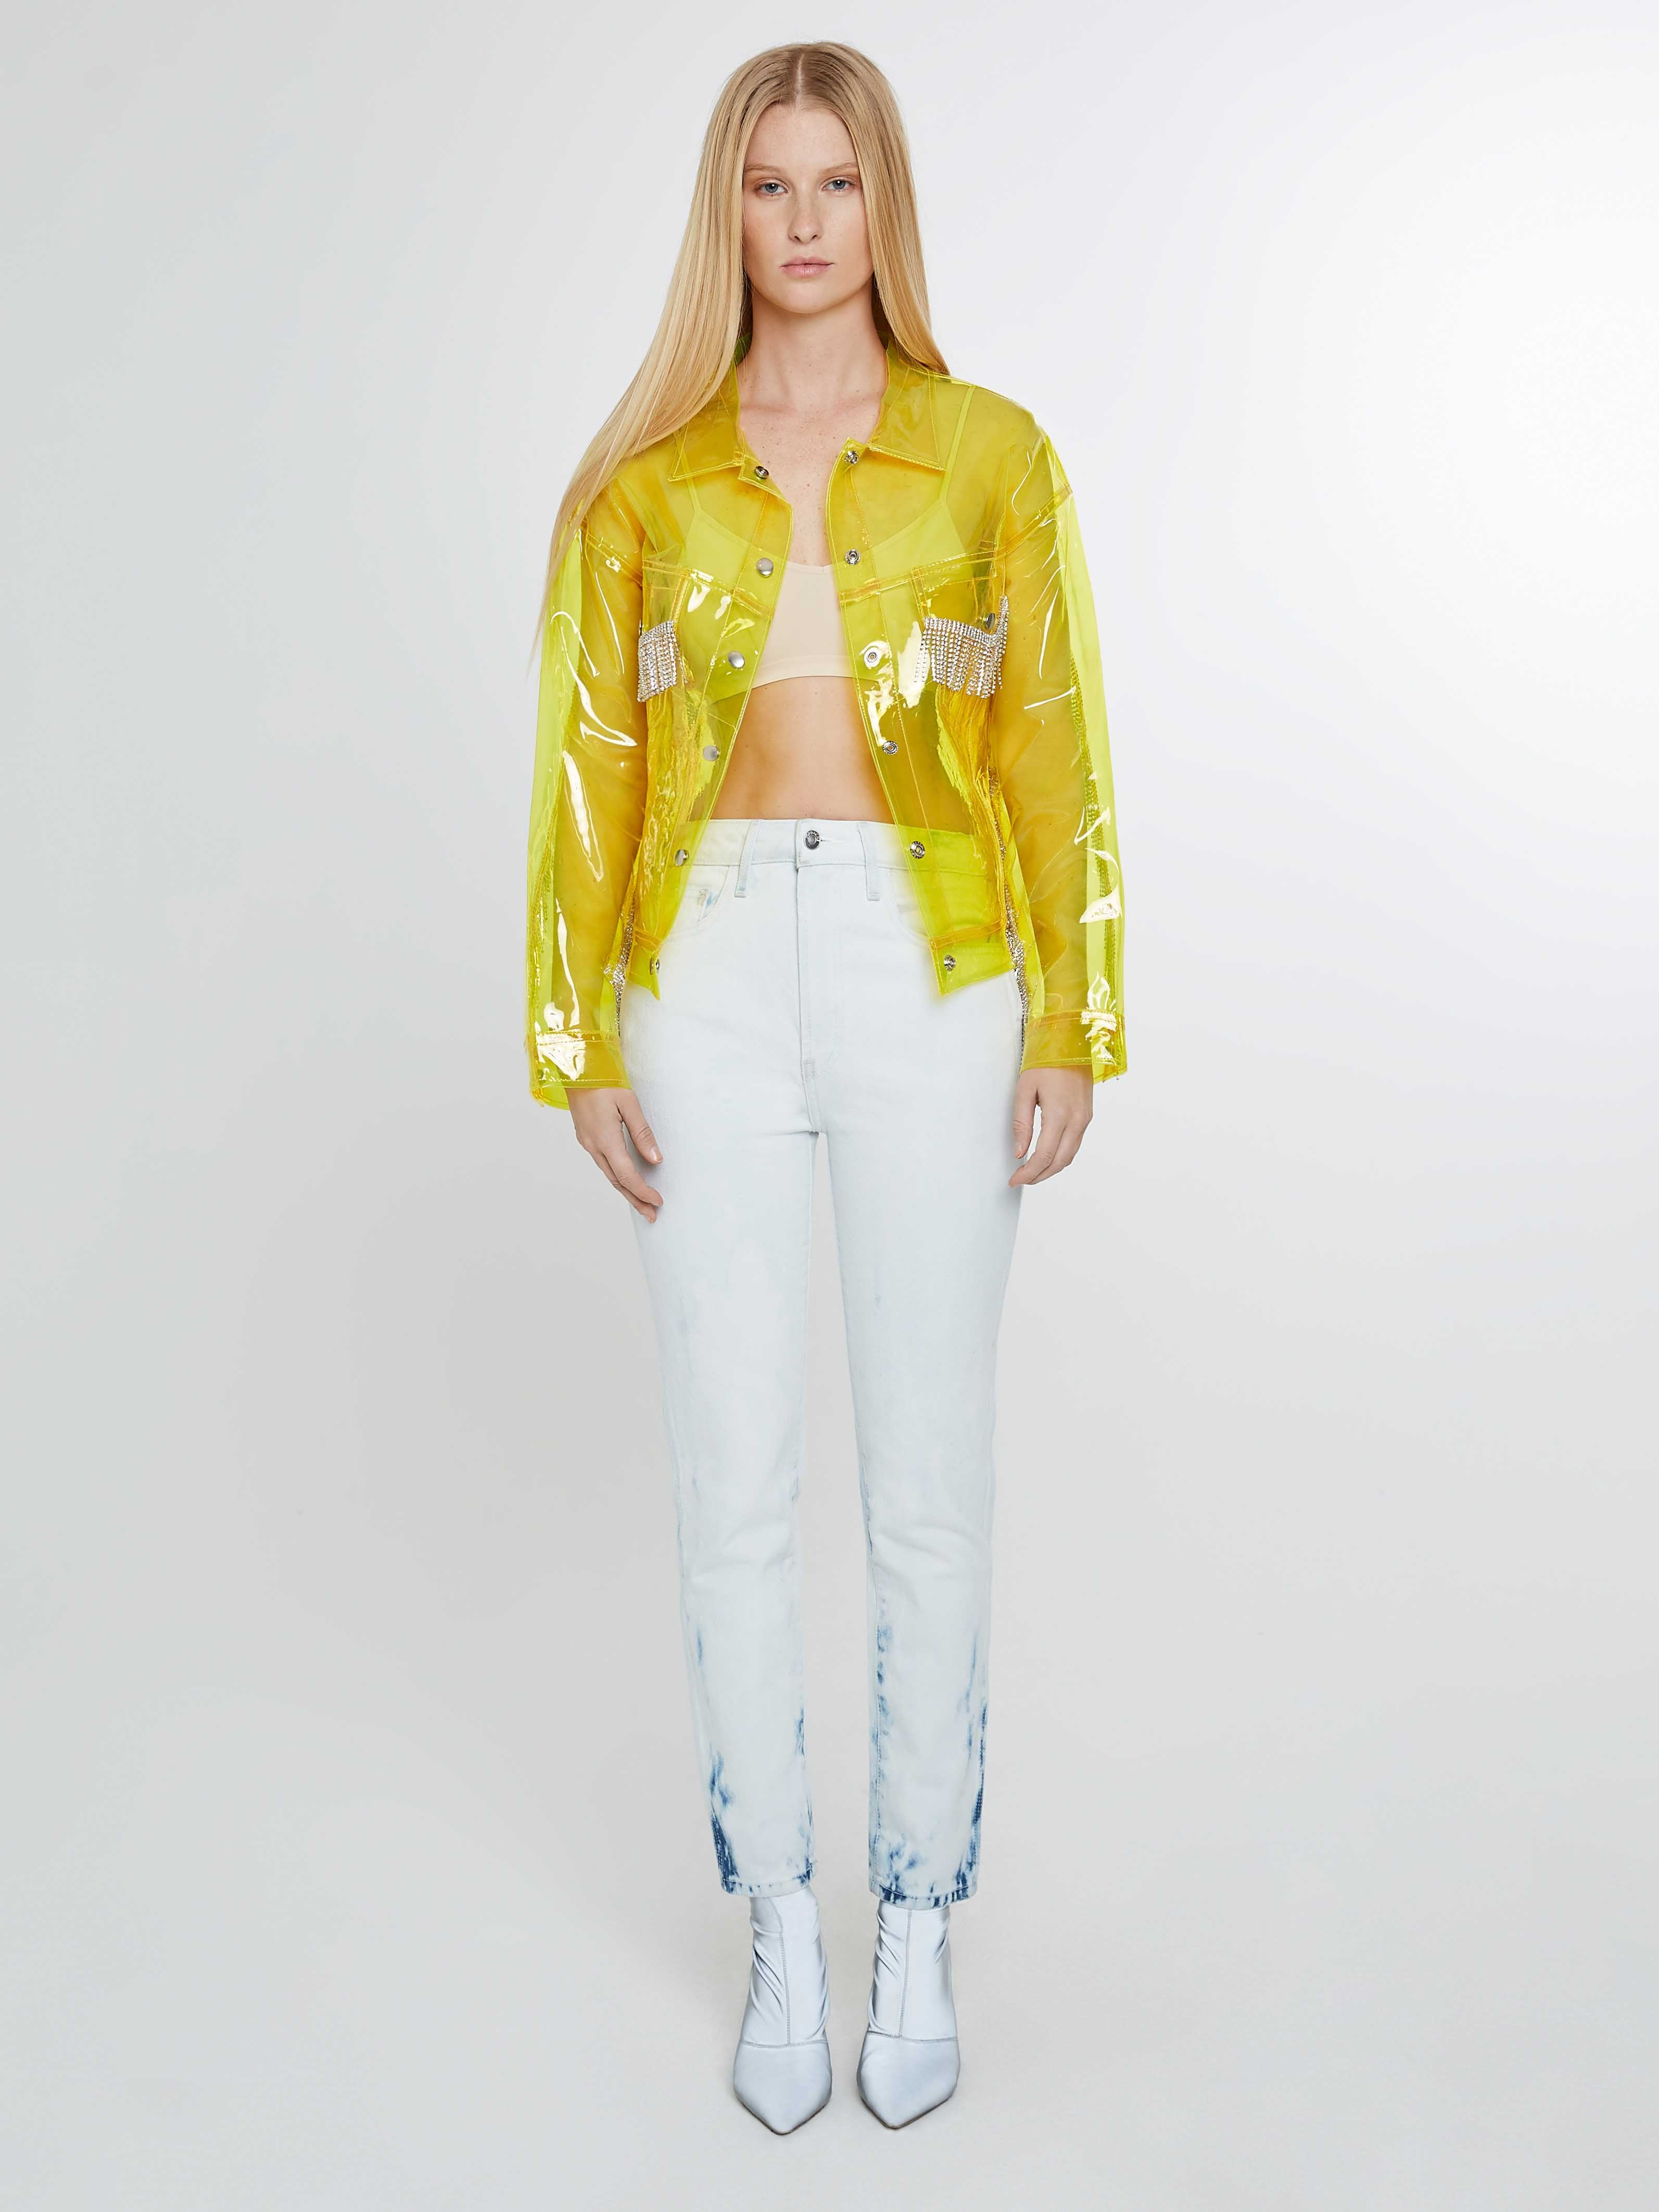 Plastic yellow trucker jacket with fringe